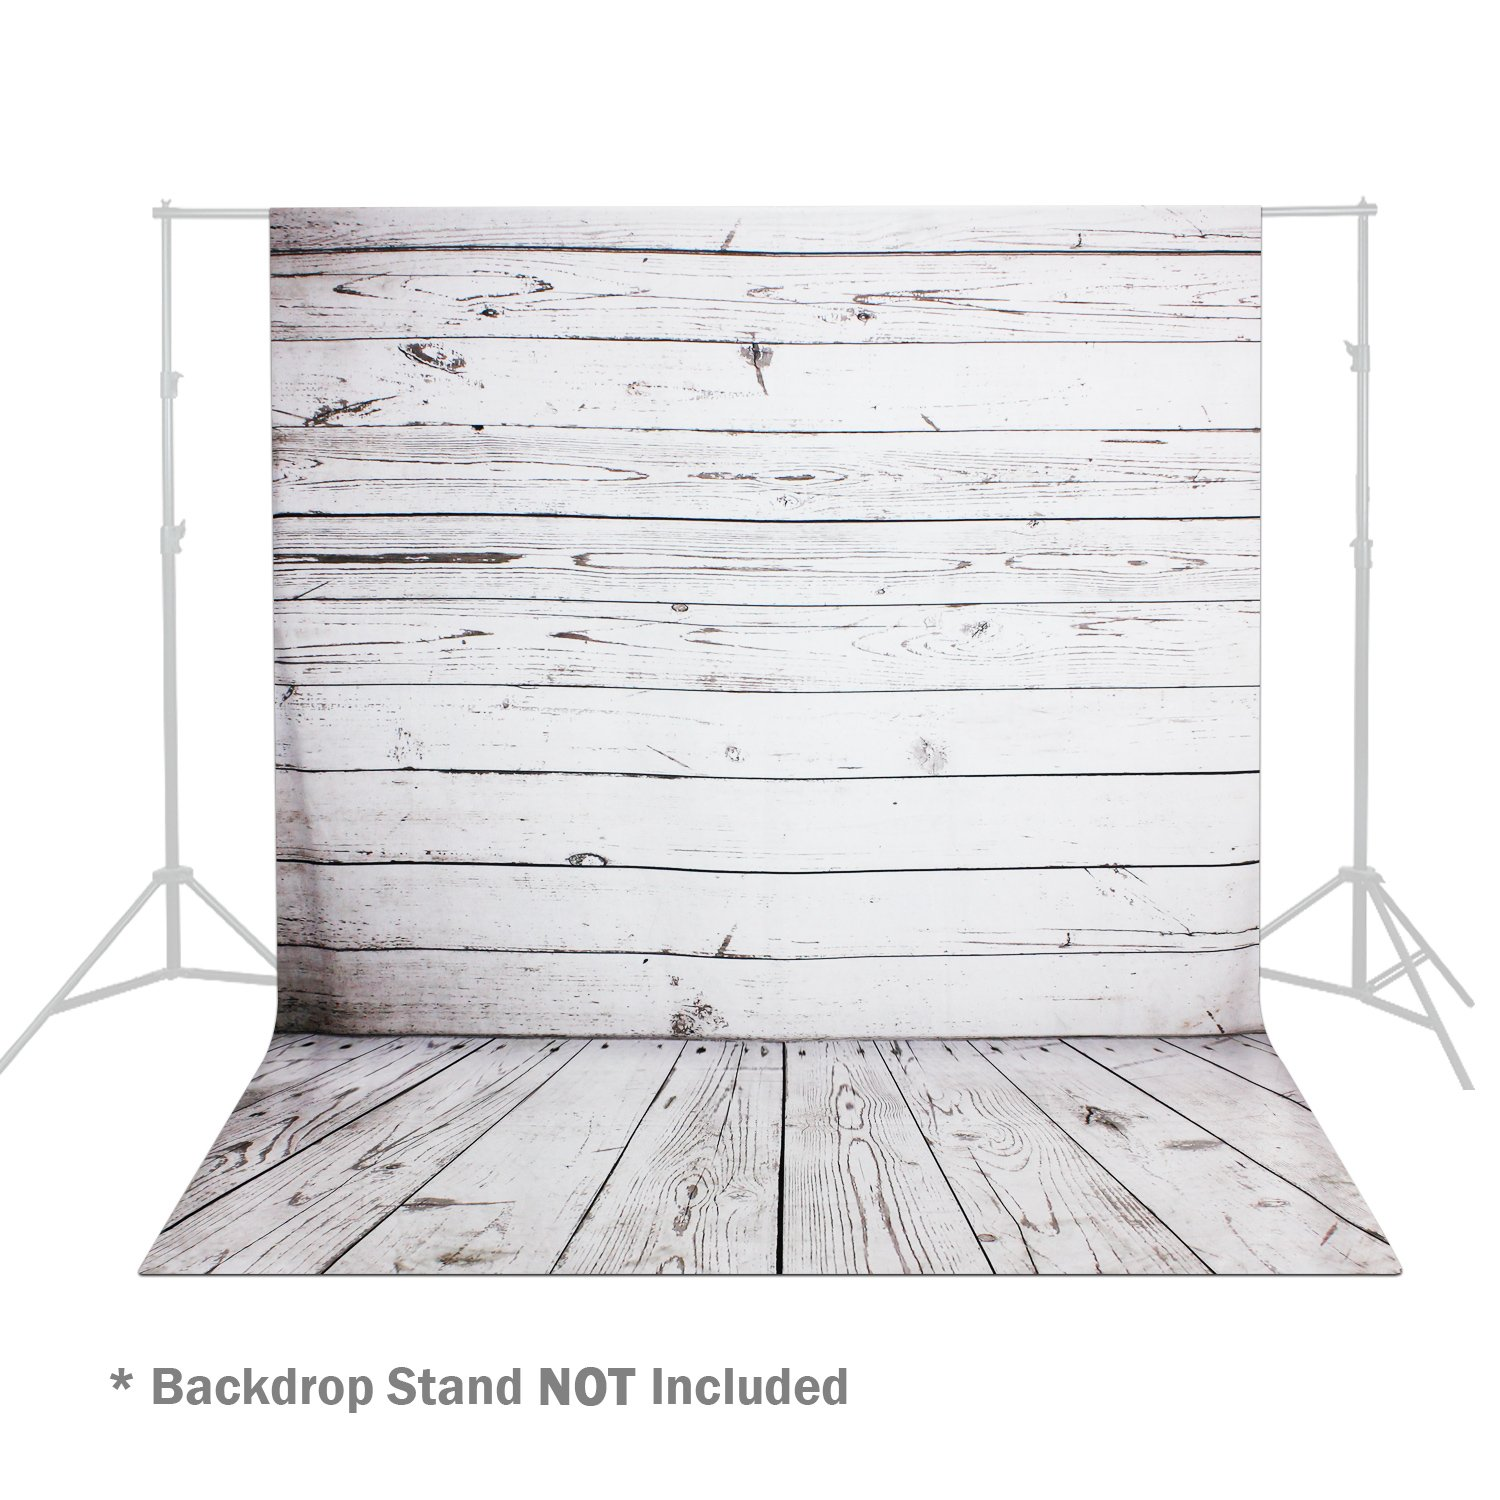 Julius Studio 5 x 10 ft. Wood Floor Printed Backdrop Background for Photography Studio Video Shooting, Backdrop Only!, JSAG356 by Julius Studio